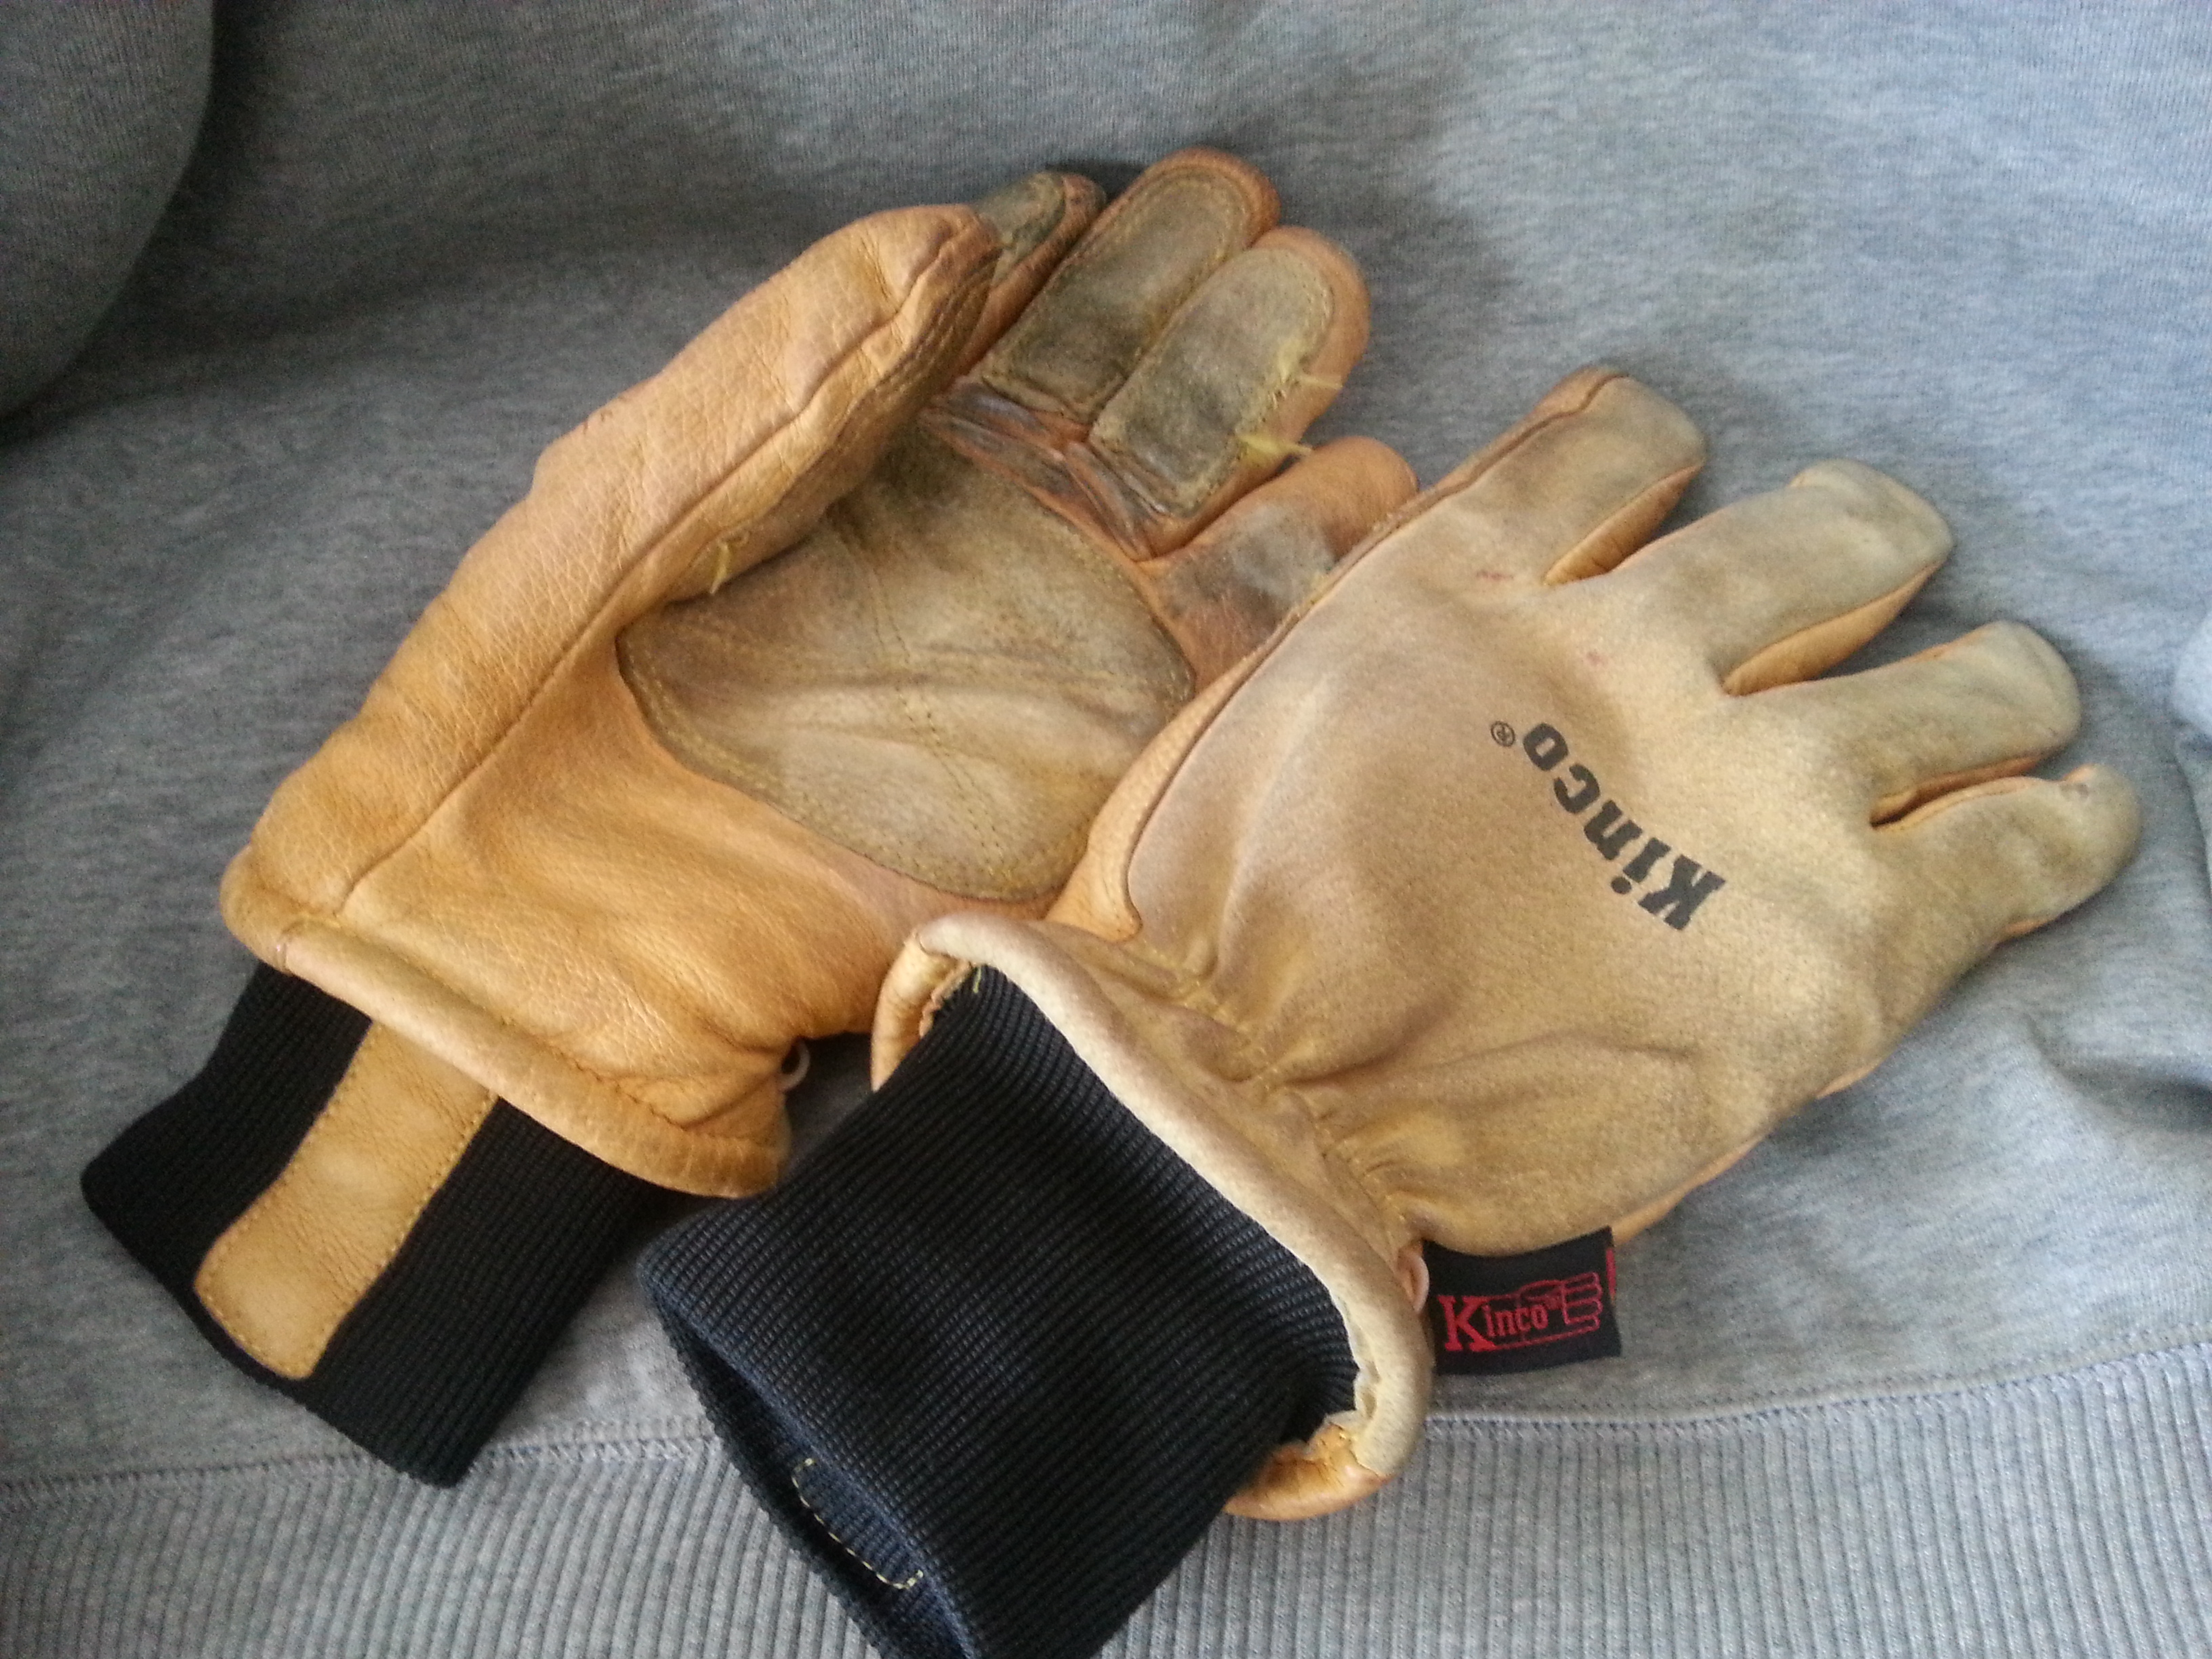 Kinco 901 Work Gloves